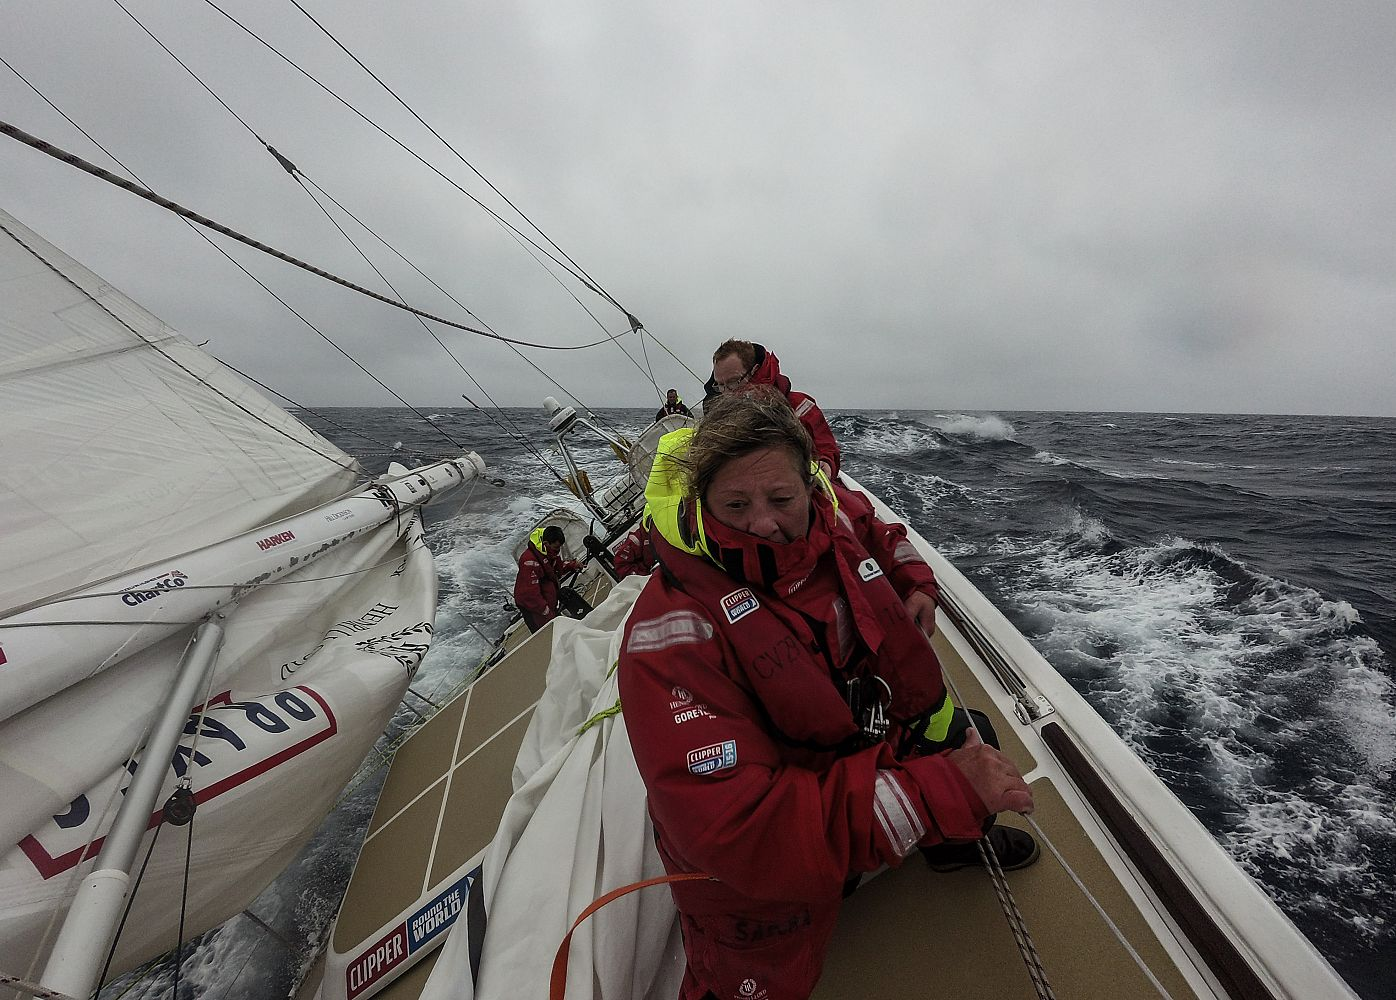 Clipper Round the World Sailing Race Continues Toward Cape Town